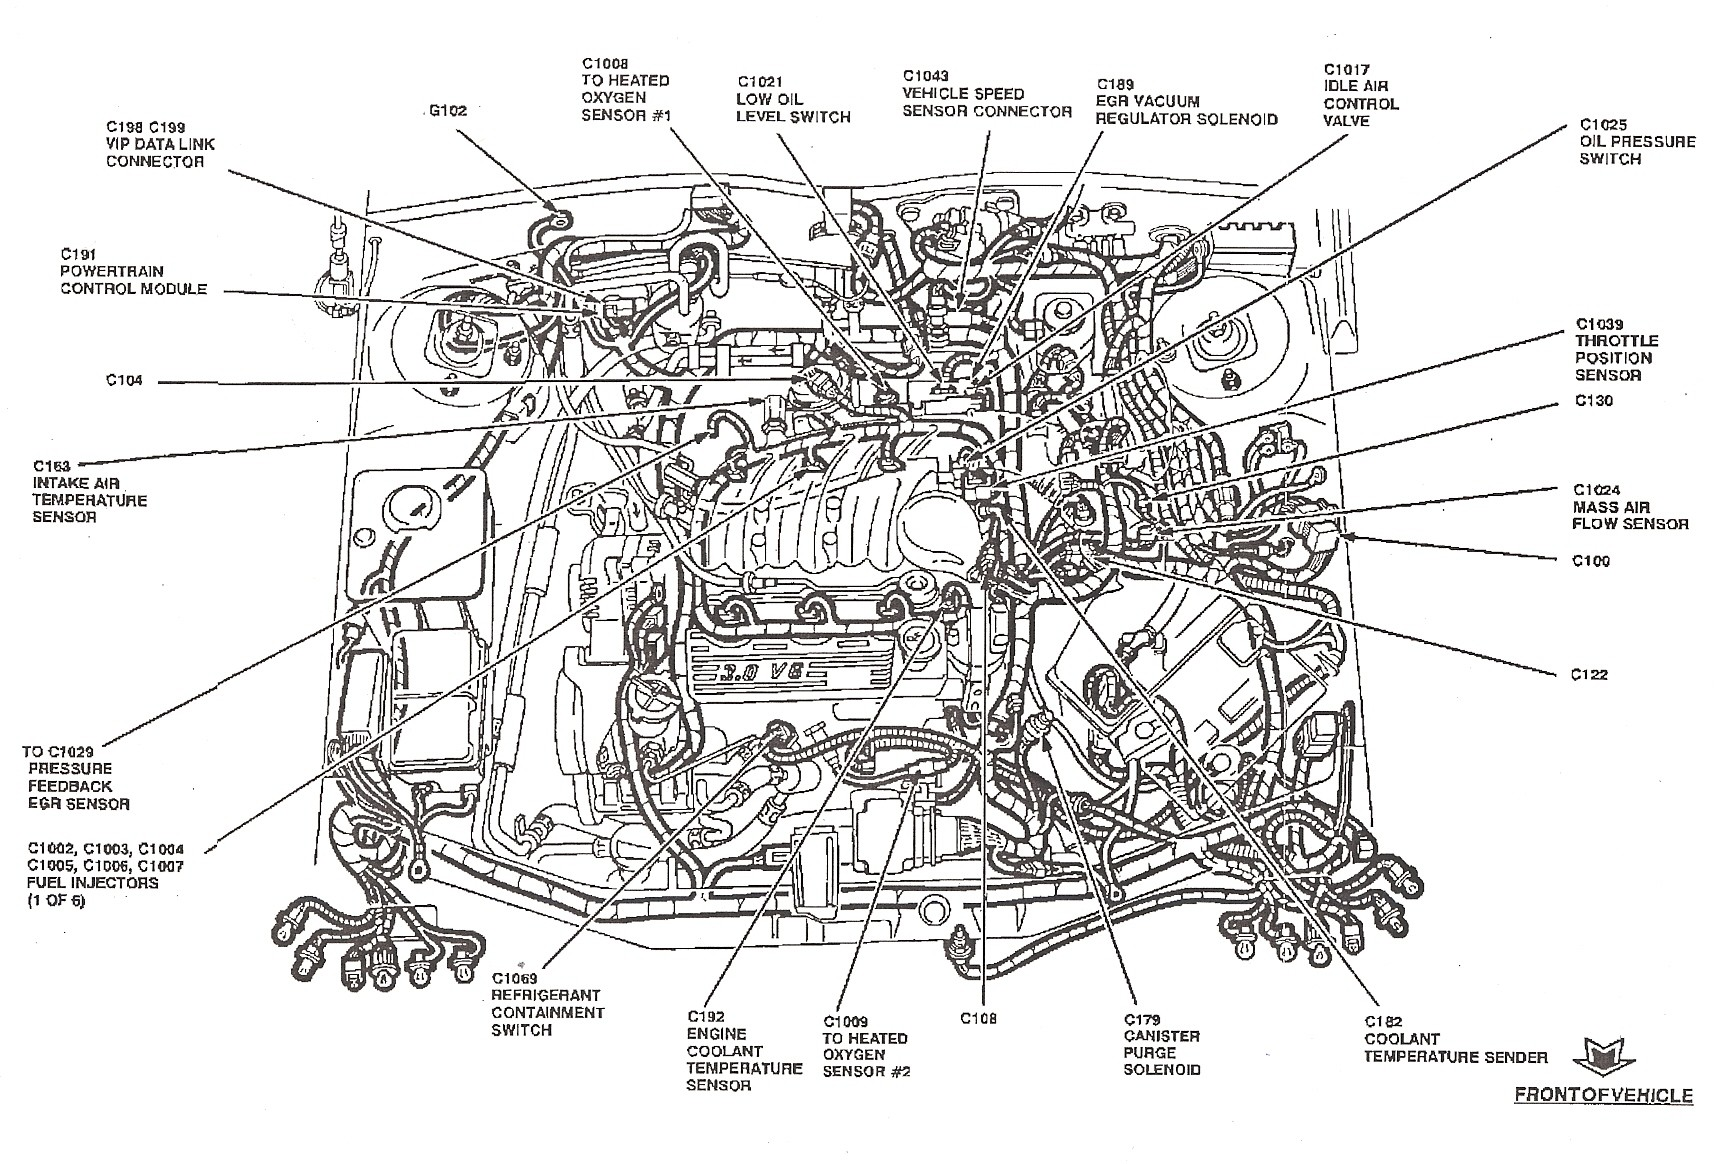 Ford Focus Ztw Wiring Diagram